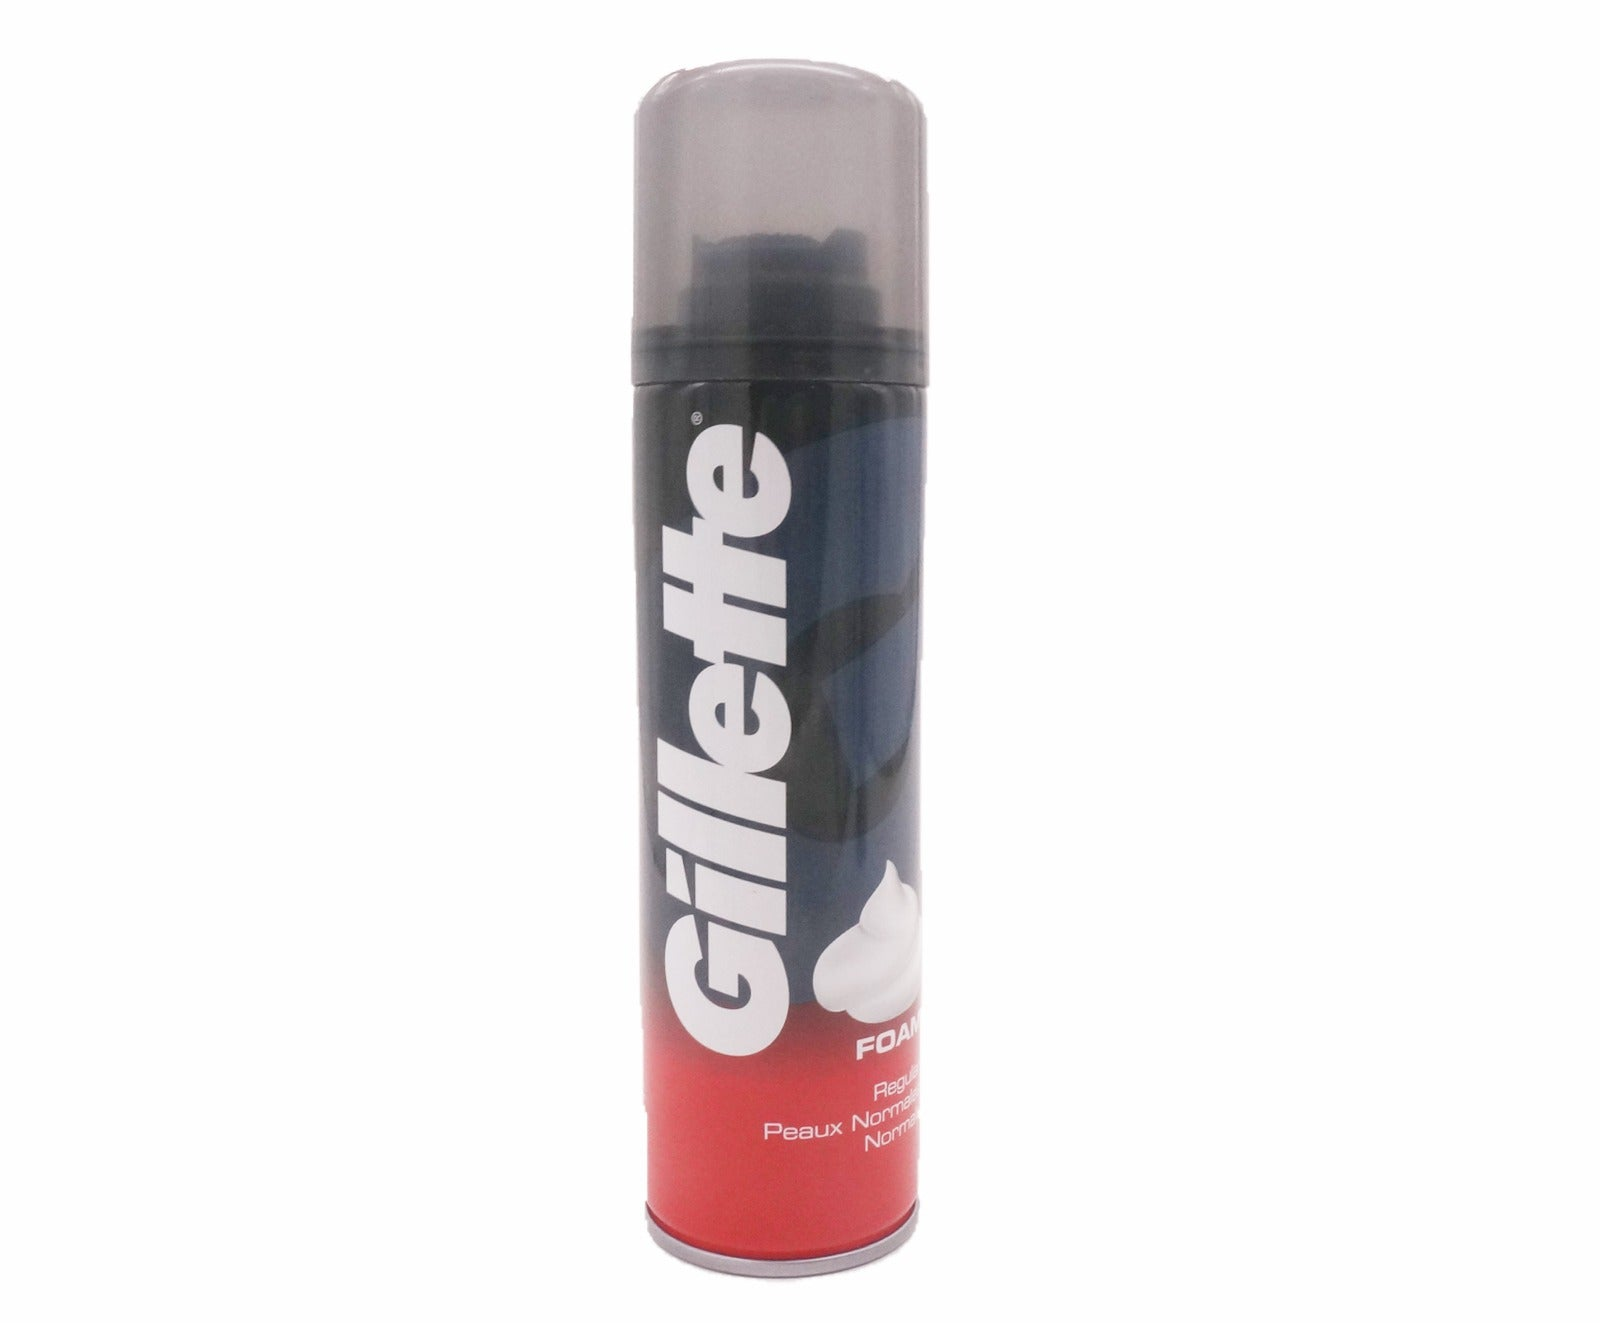 Gillette Shave Foam - Regular (200ml – Piece)